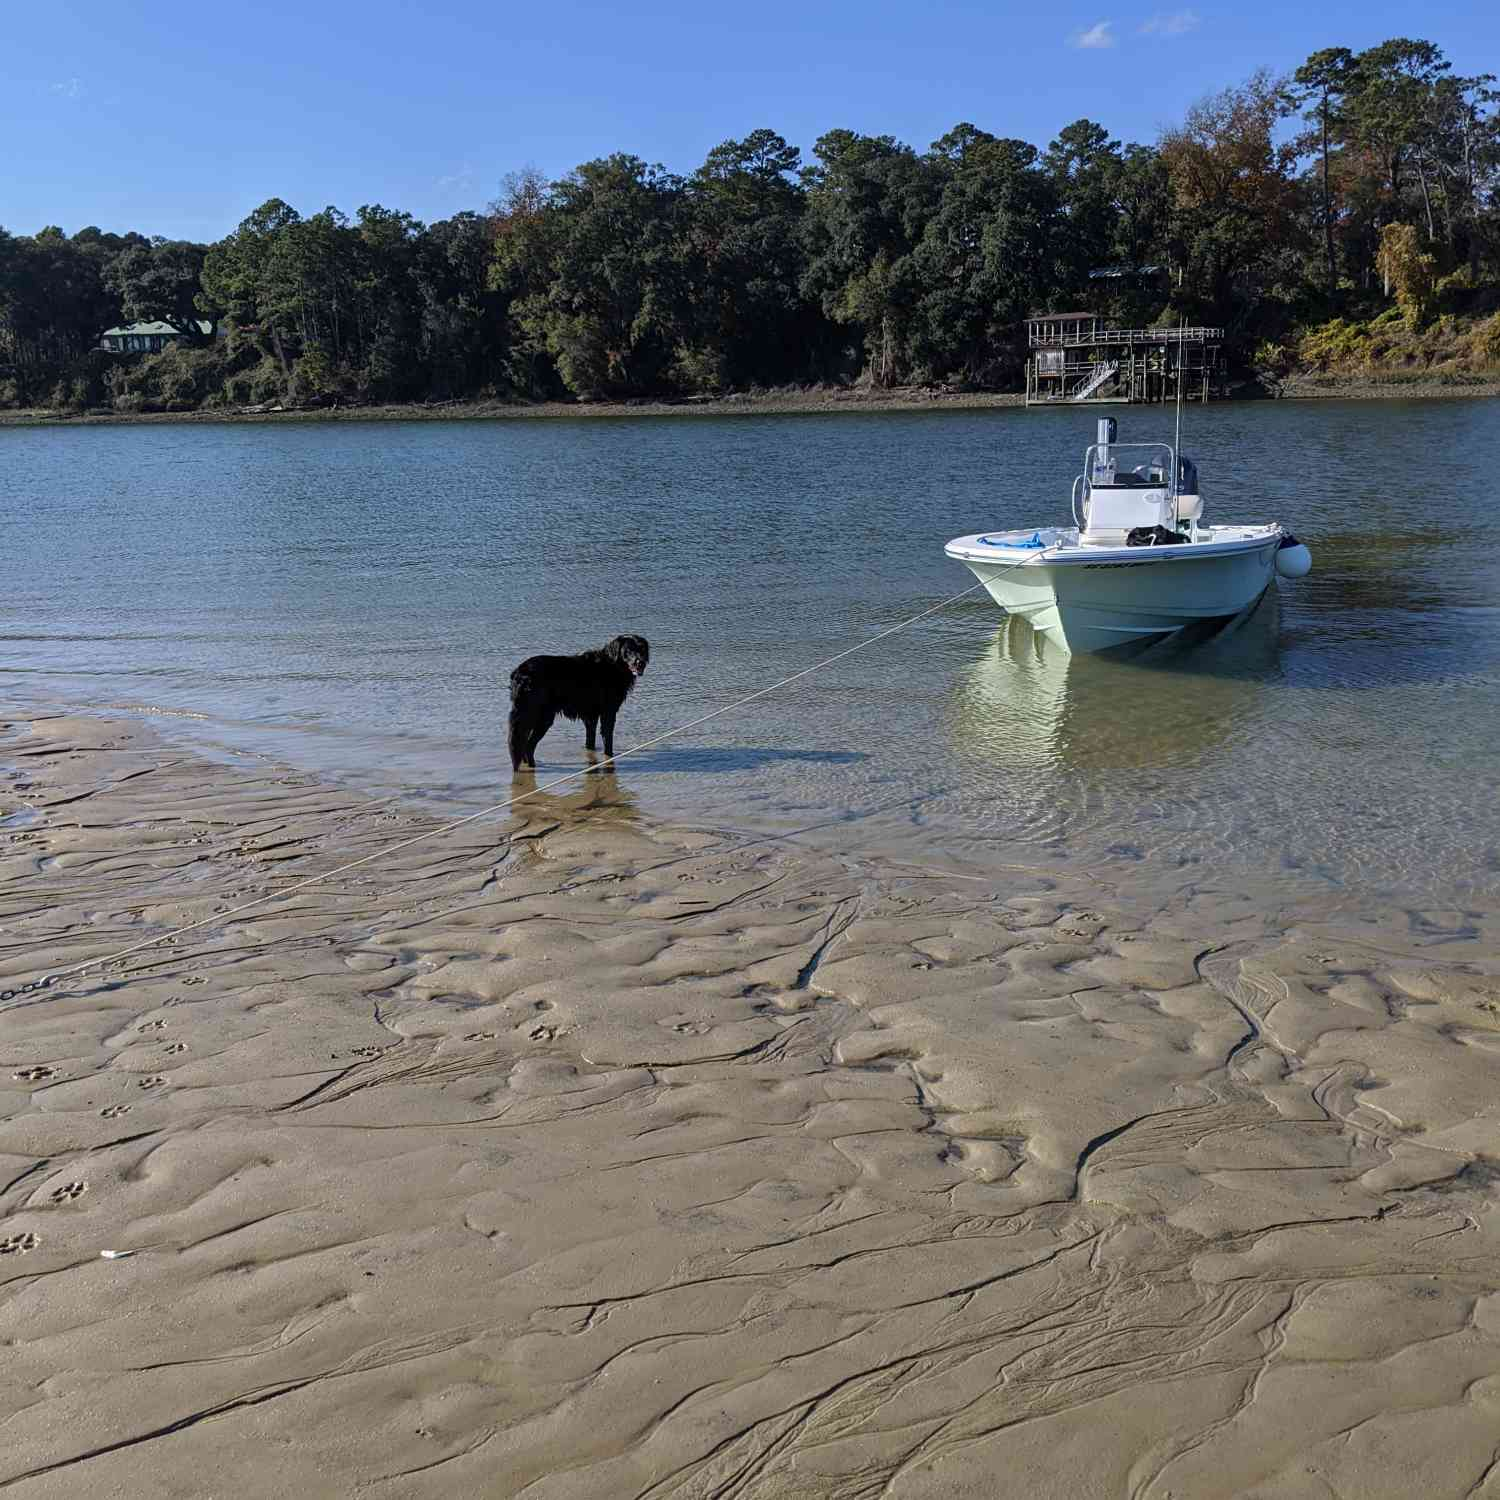 Title: Boats and dogs - On board their Sportsman Island Bay 20 Bay Boat - Location: Bluffton, south Carolina. Participating in the Photo Contest #SportsmanMay2020